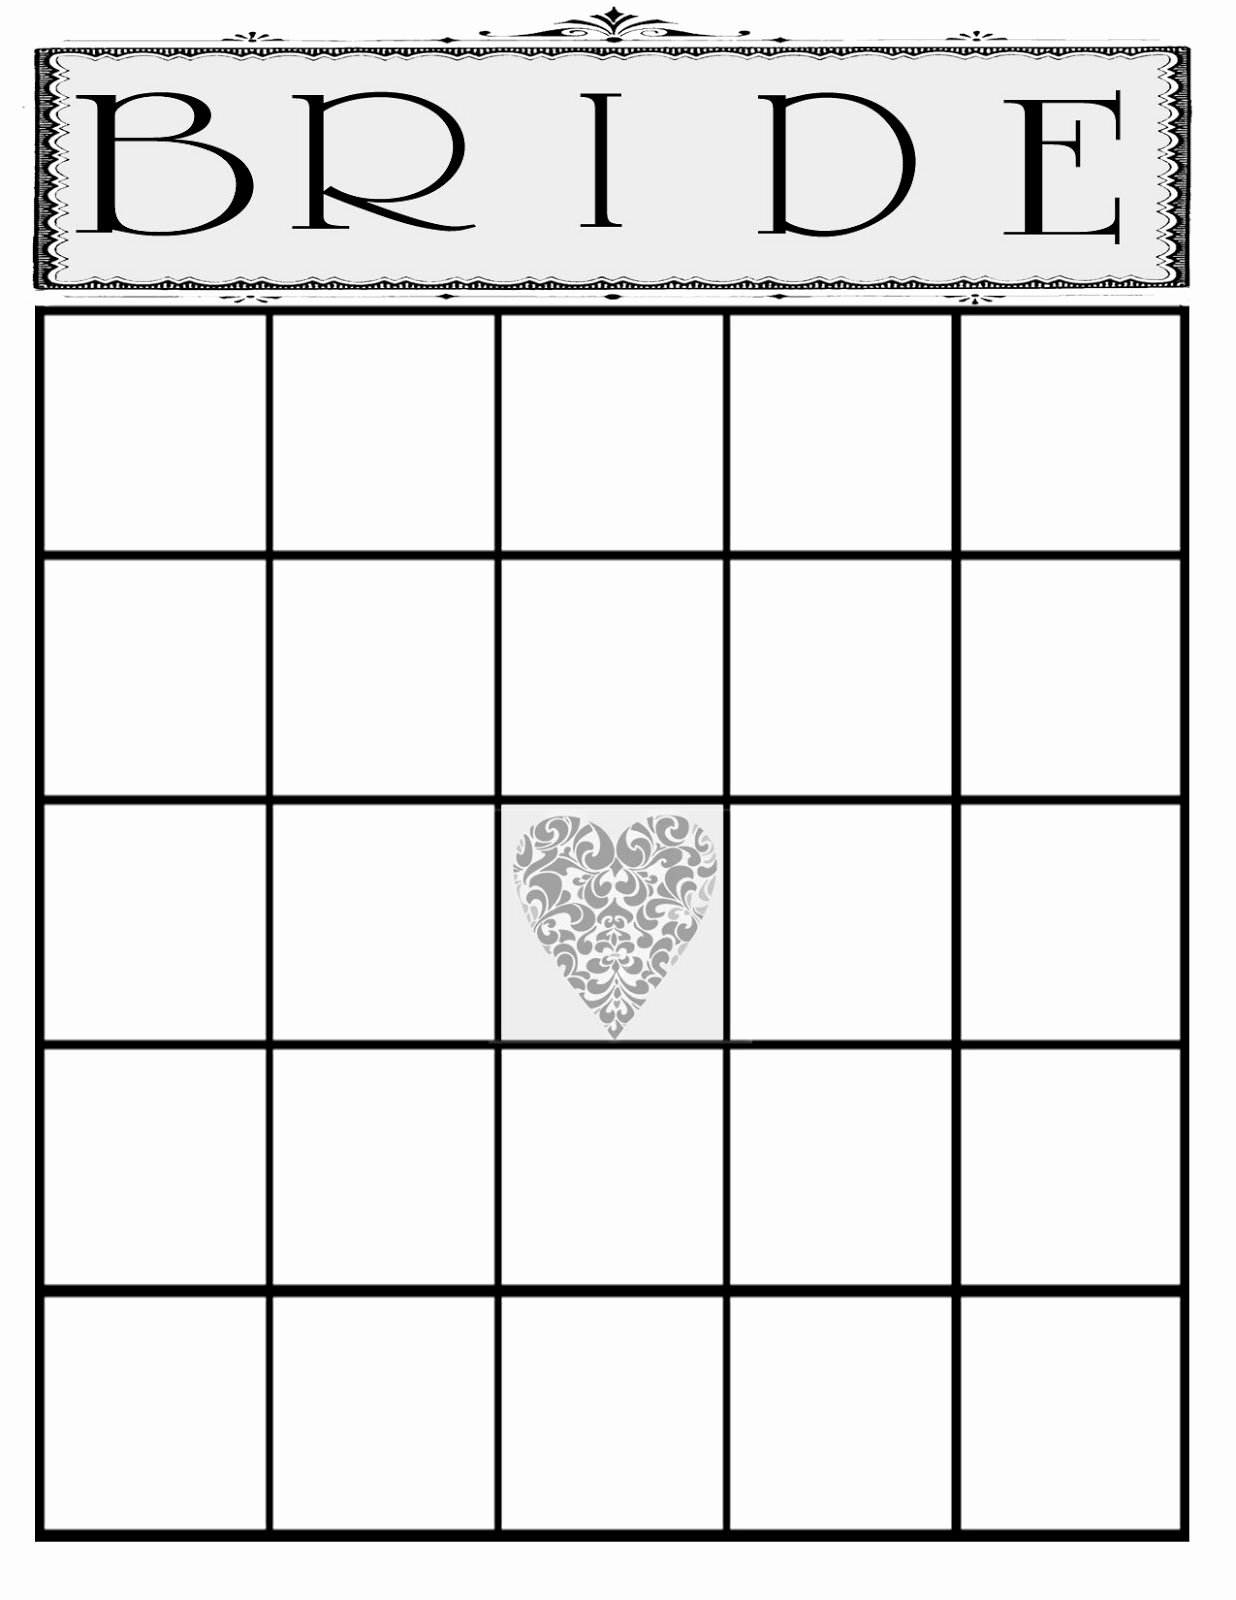 Bridal Shower Bingo Template Fresh the Creative Pointe A Beautiful Bridal Shower and A